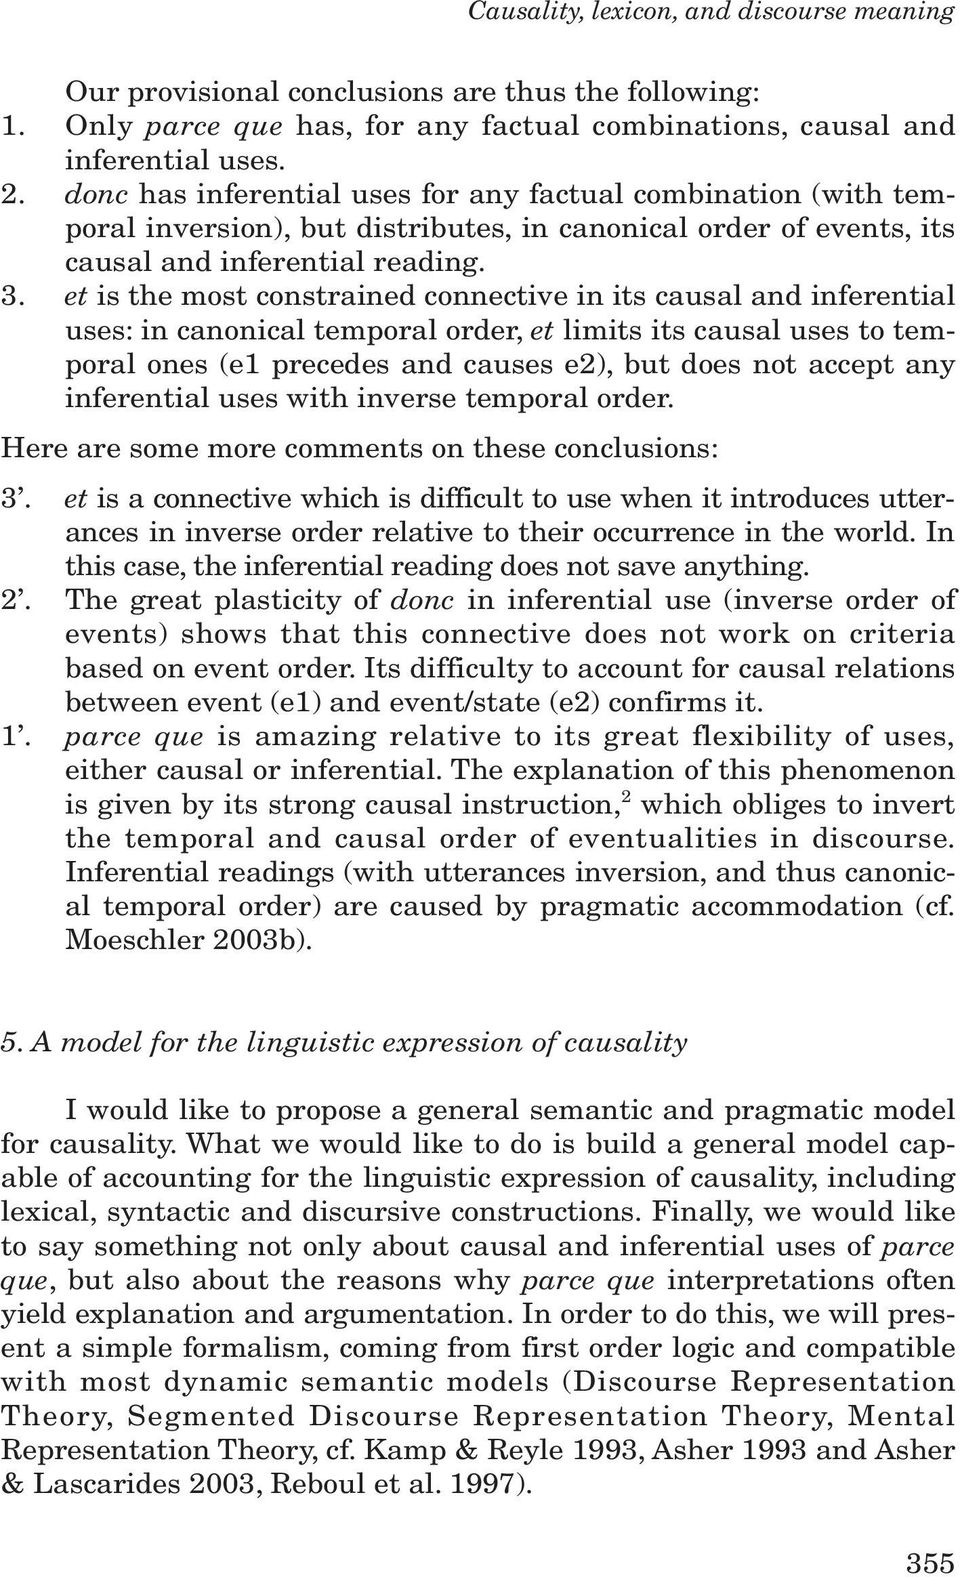 et is the most constrained connective in its causal and inferential uses: in canonical temporal order, et limits its causal uses to temporal ones (e1 precedes and causes e2), but does not accept any